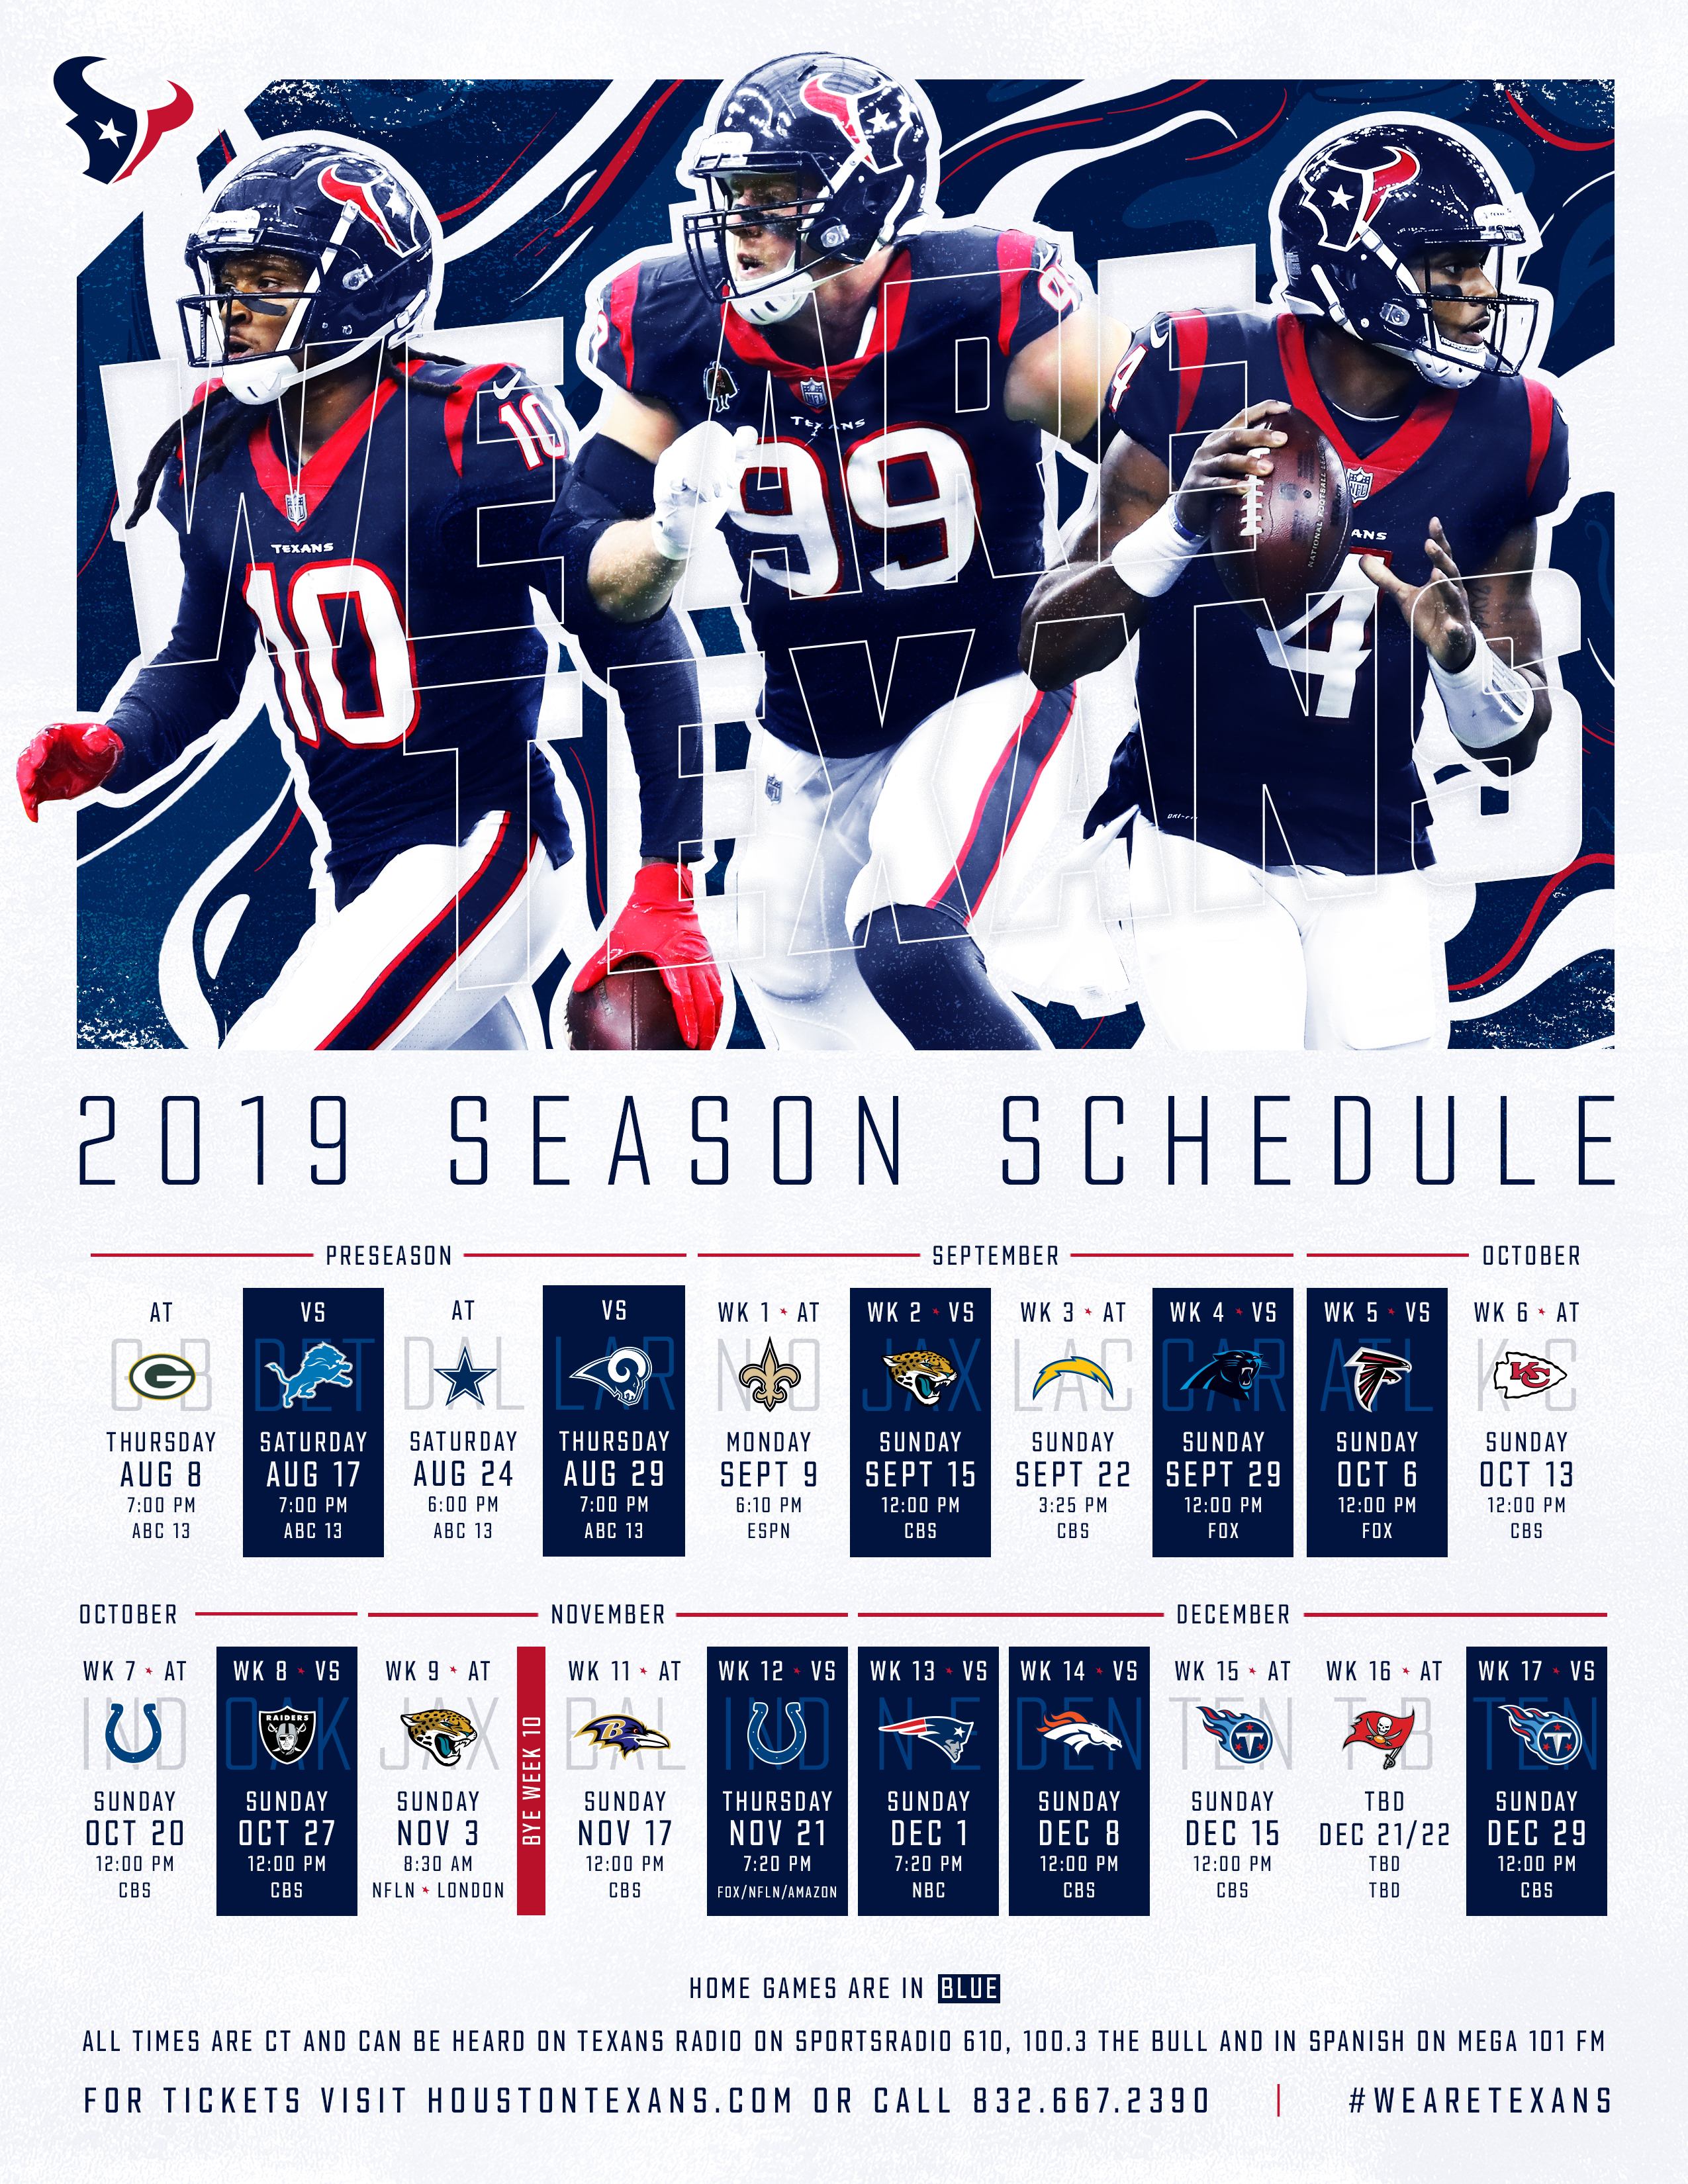 Texans Schedule | Houston Texans - Houstontexans